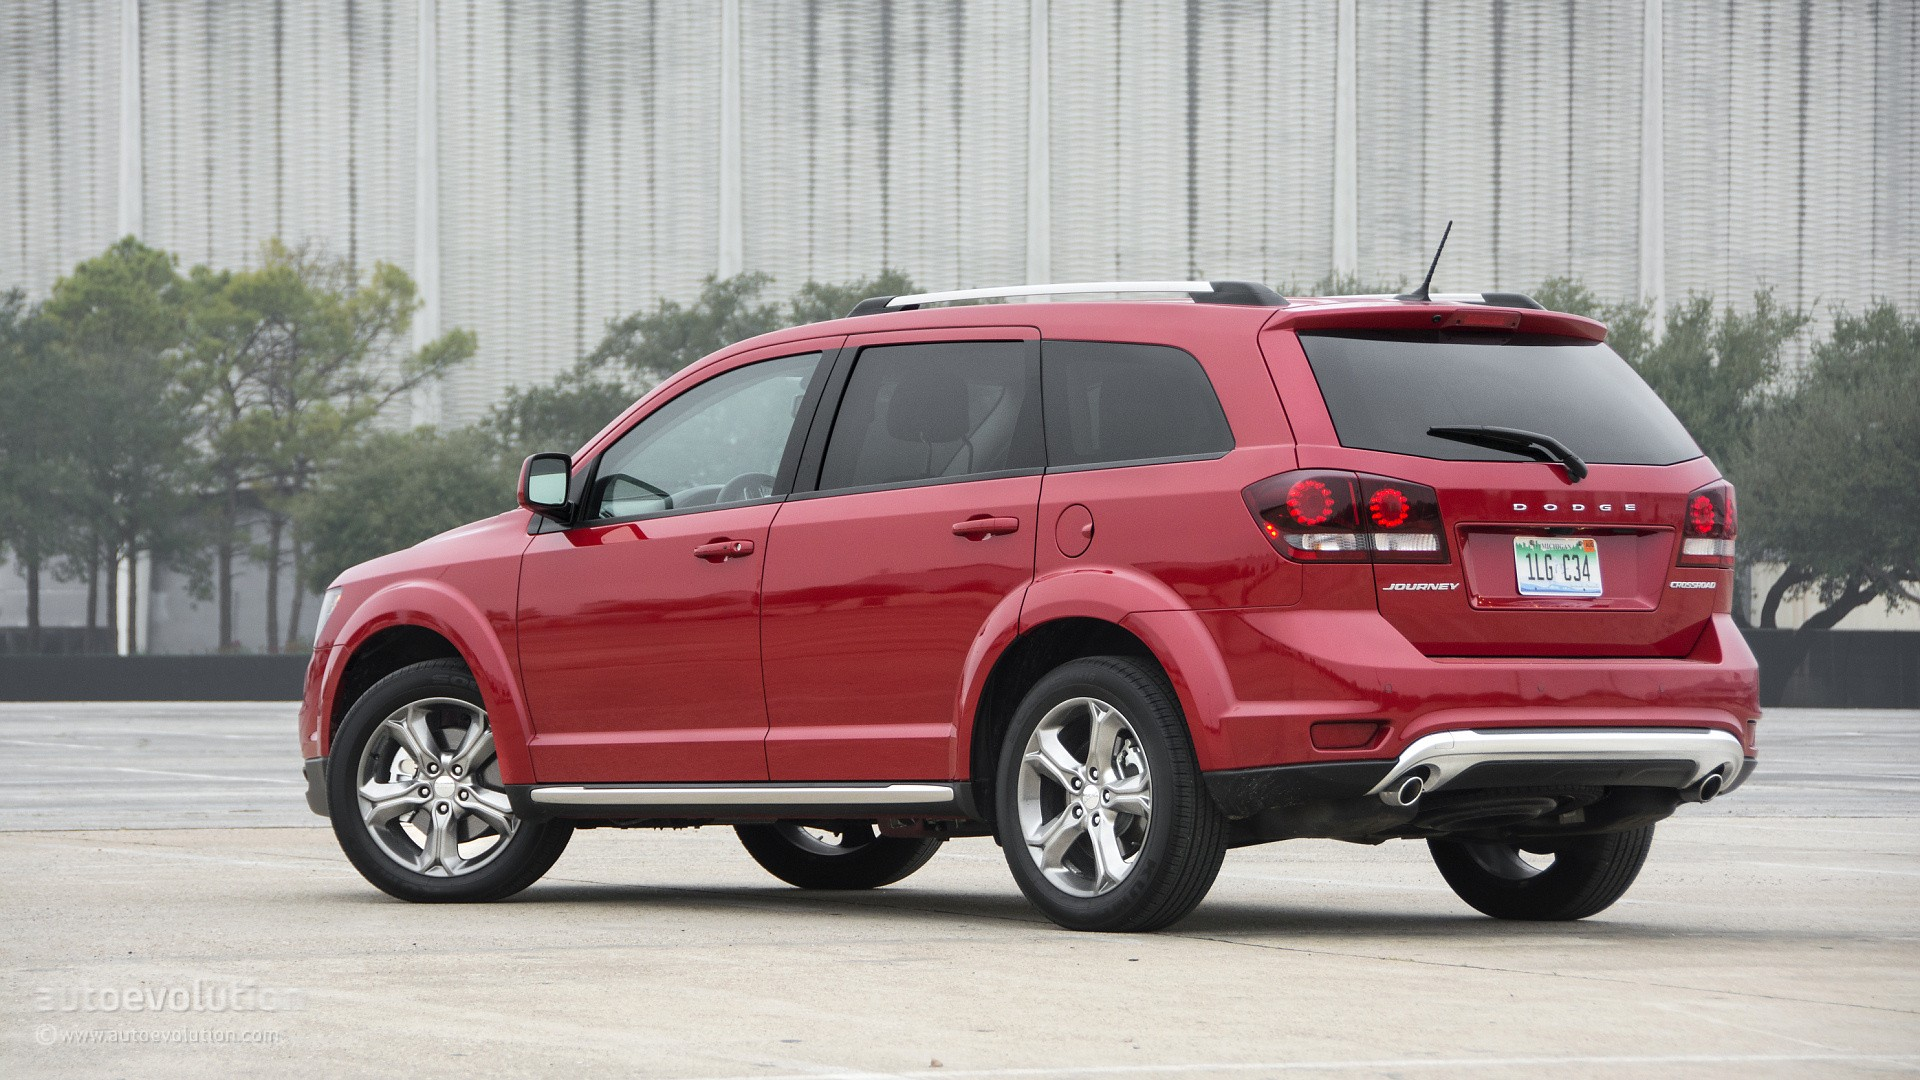 2015 dodge journey review autoevolution. Black Bedroom Furniture Sets. Home Design Ideas